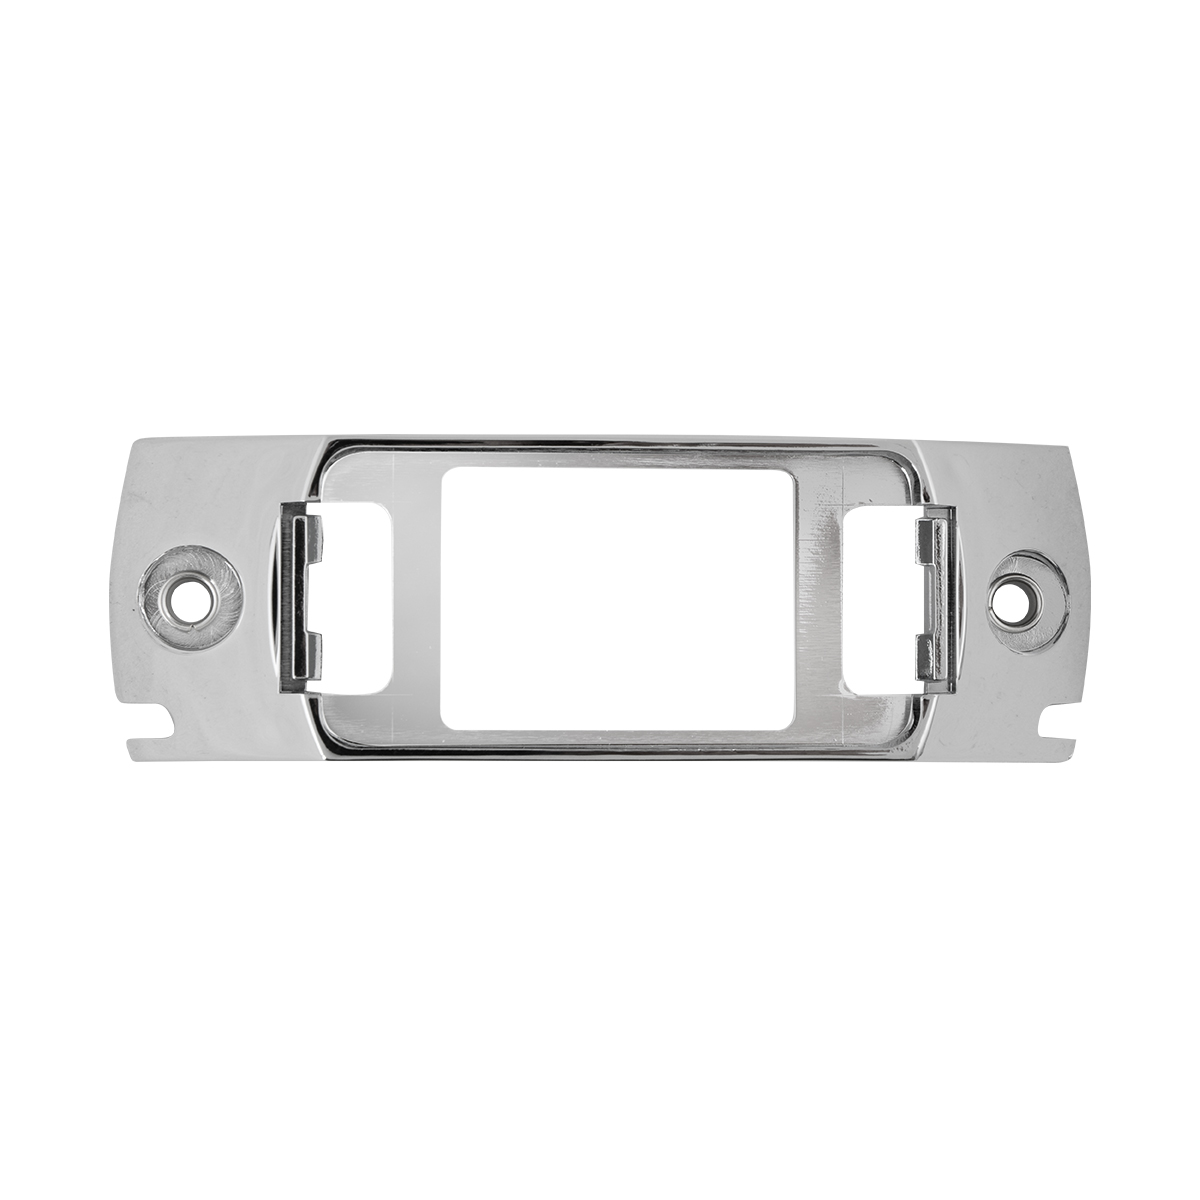 87669 Adapter Mount Rail Style Bracket for Small Rectangular Light